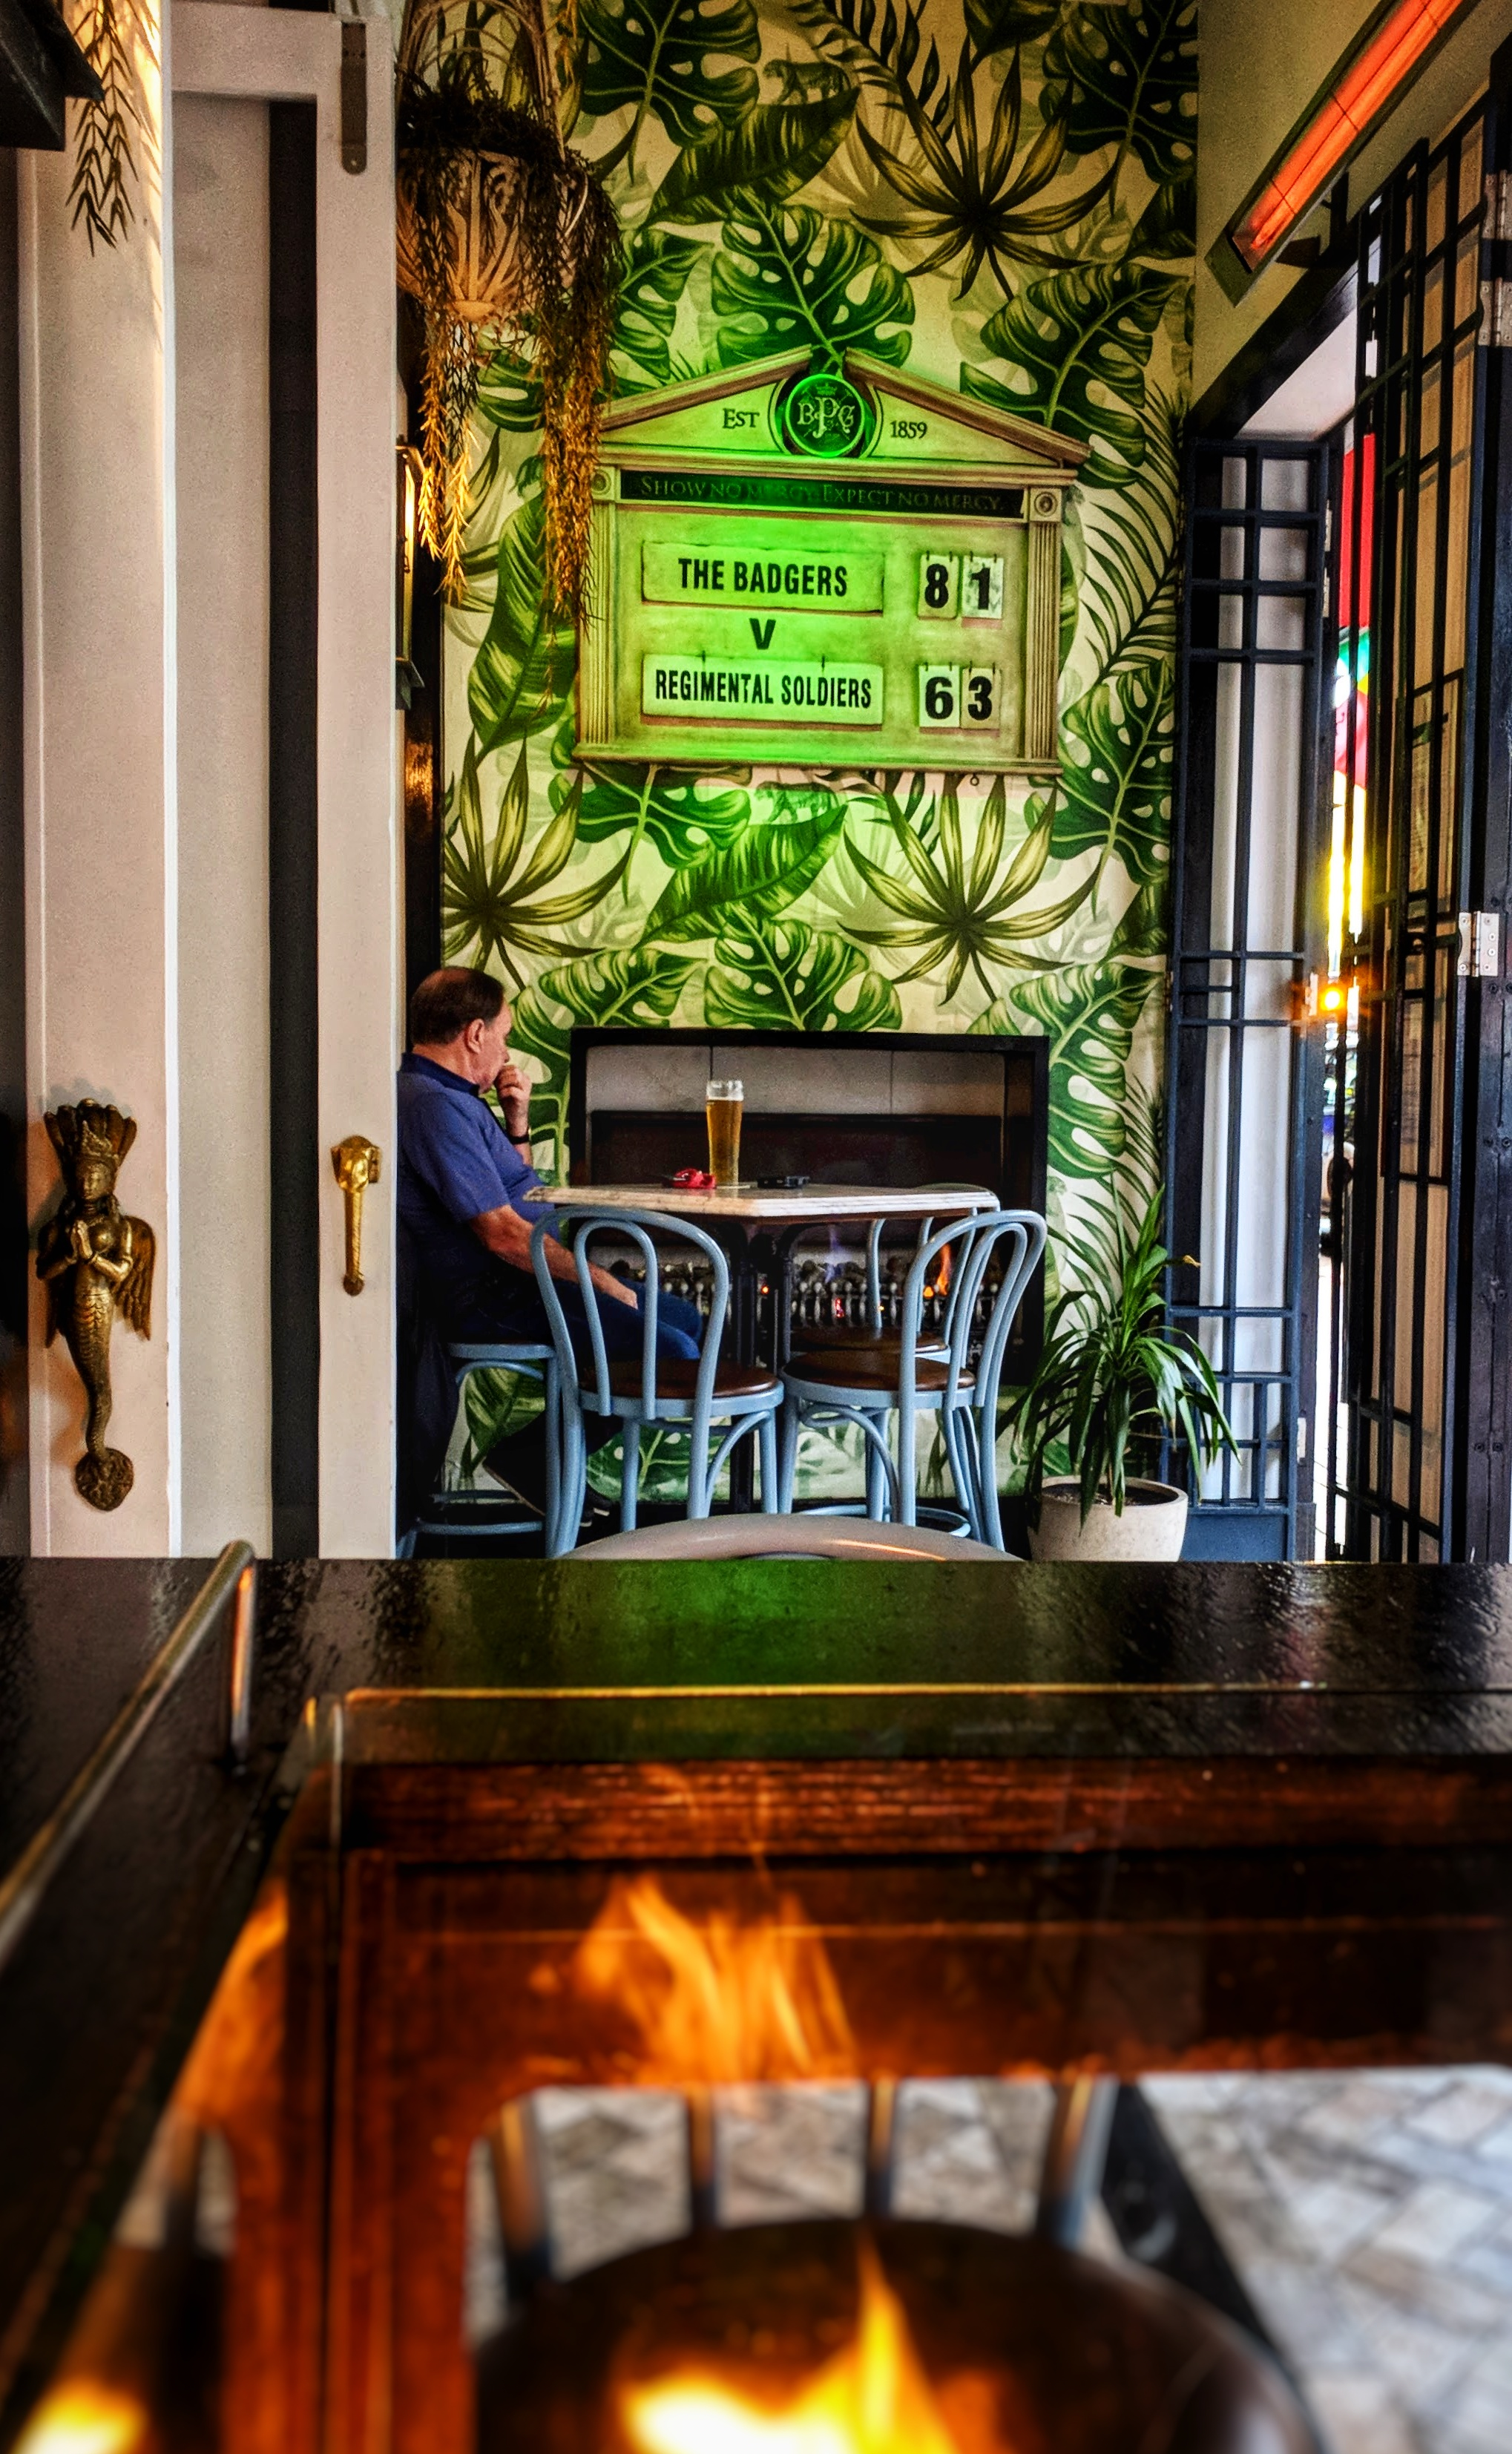 Entrance to bar with man pondering